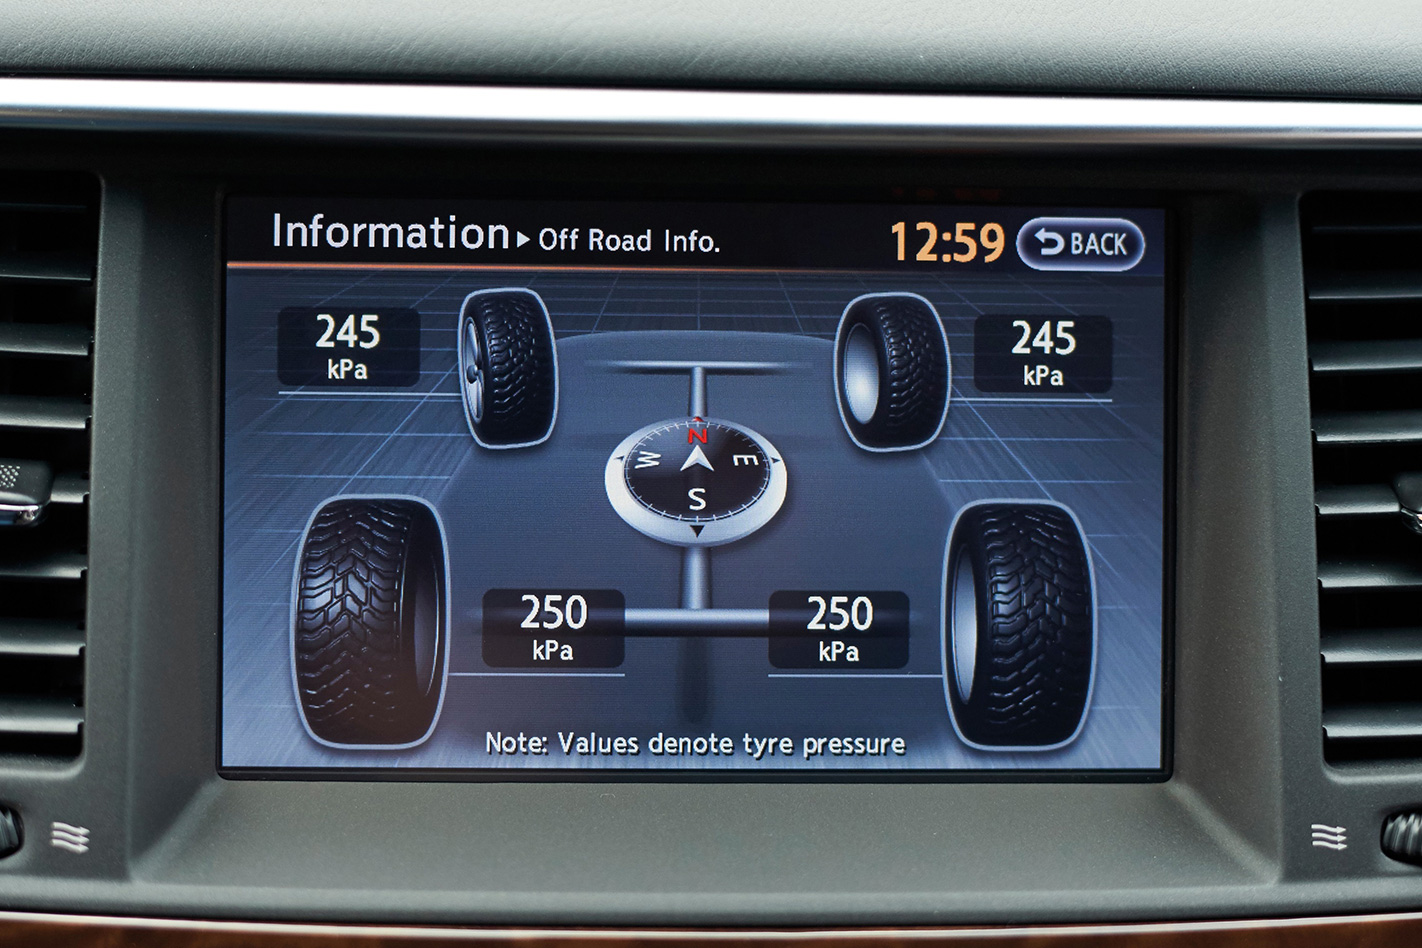 Onboard technology system